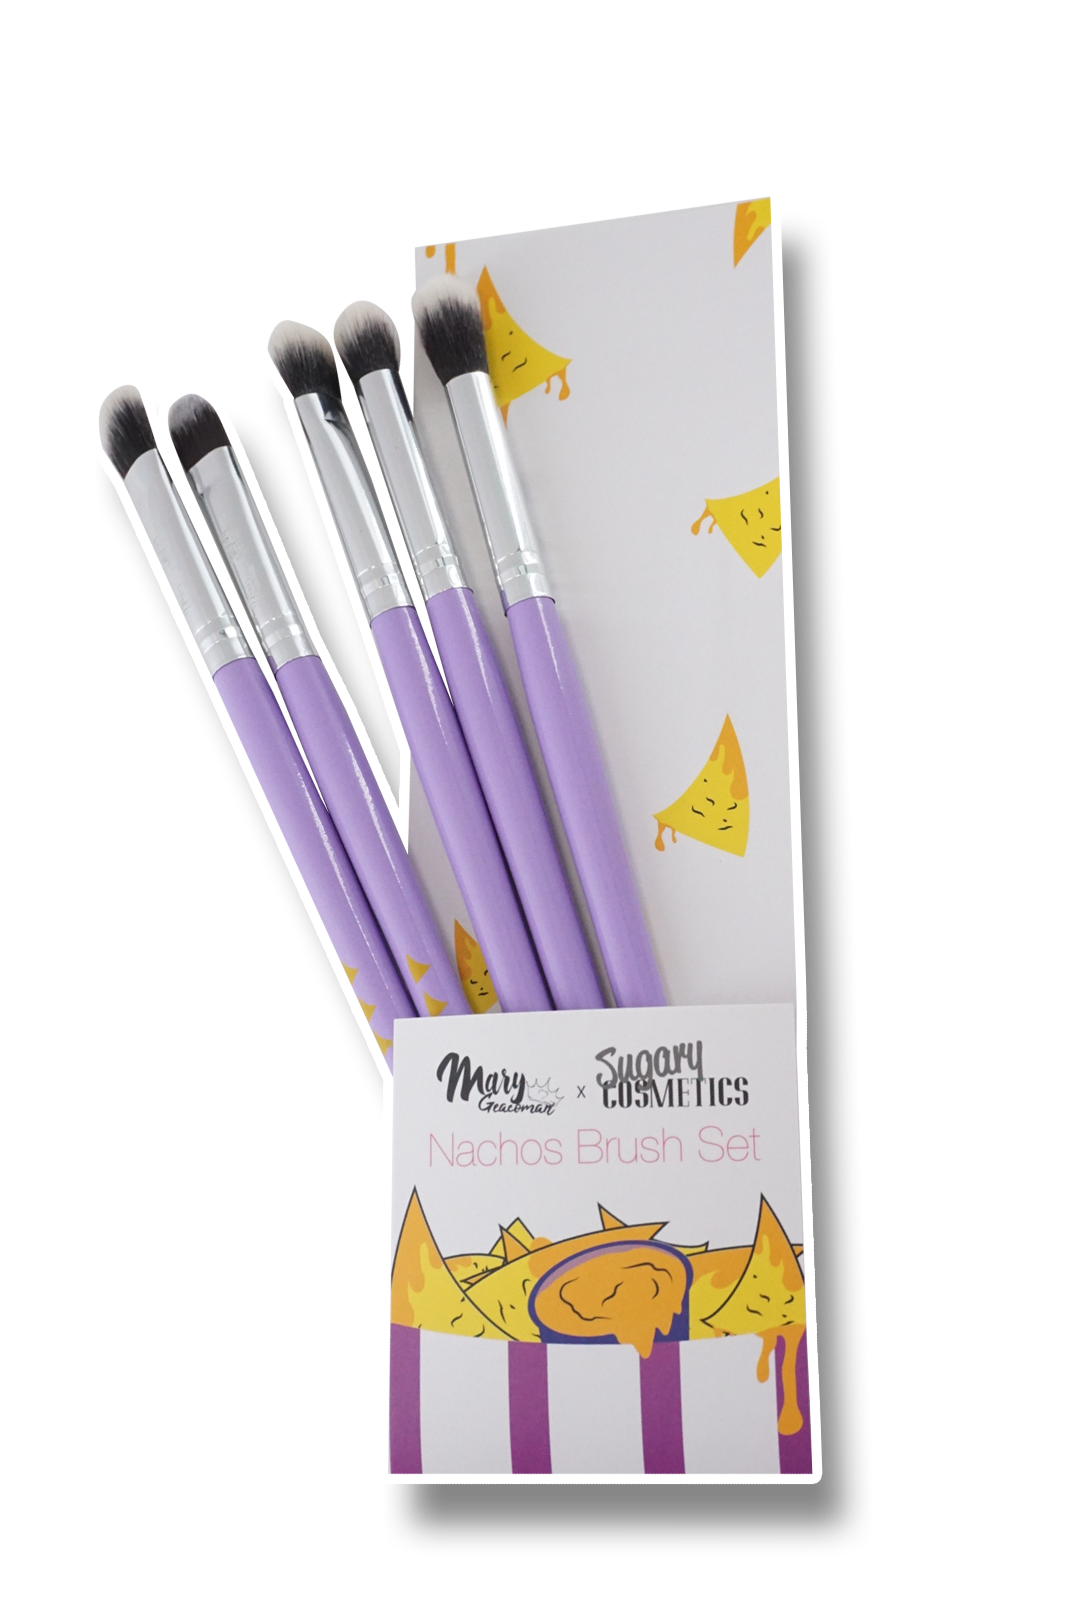 NACHOS MAKEUP BRUSH SET - 5PC | MARY GEACOMAN X SUGARY COSMETICS MOVIE NIGHT COLLECTION